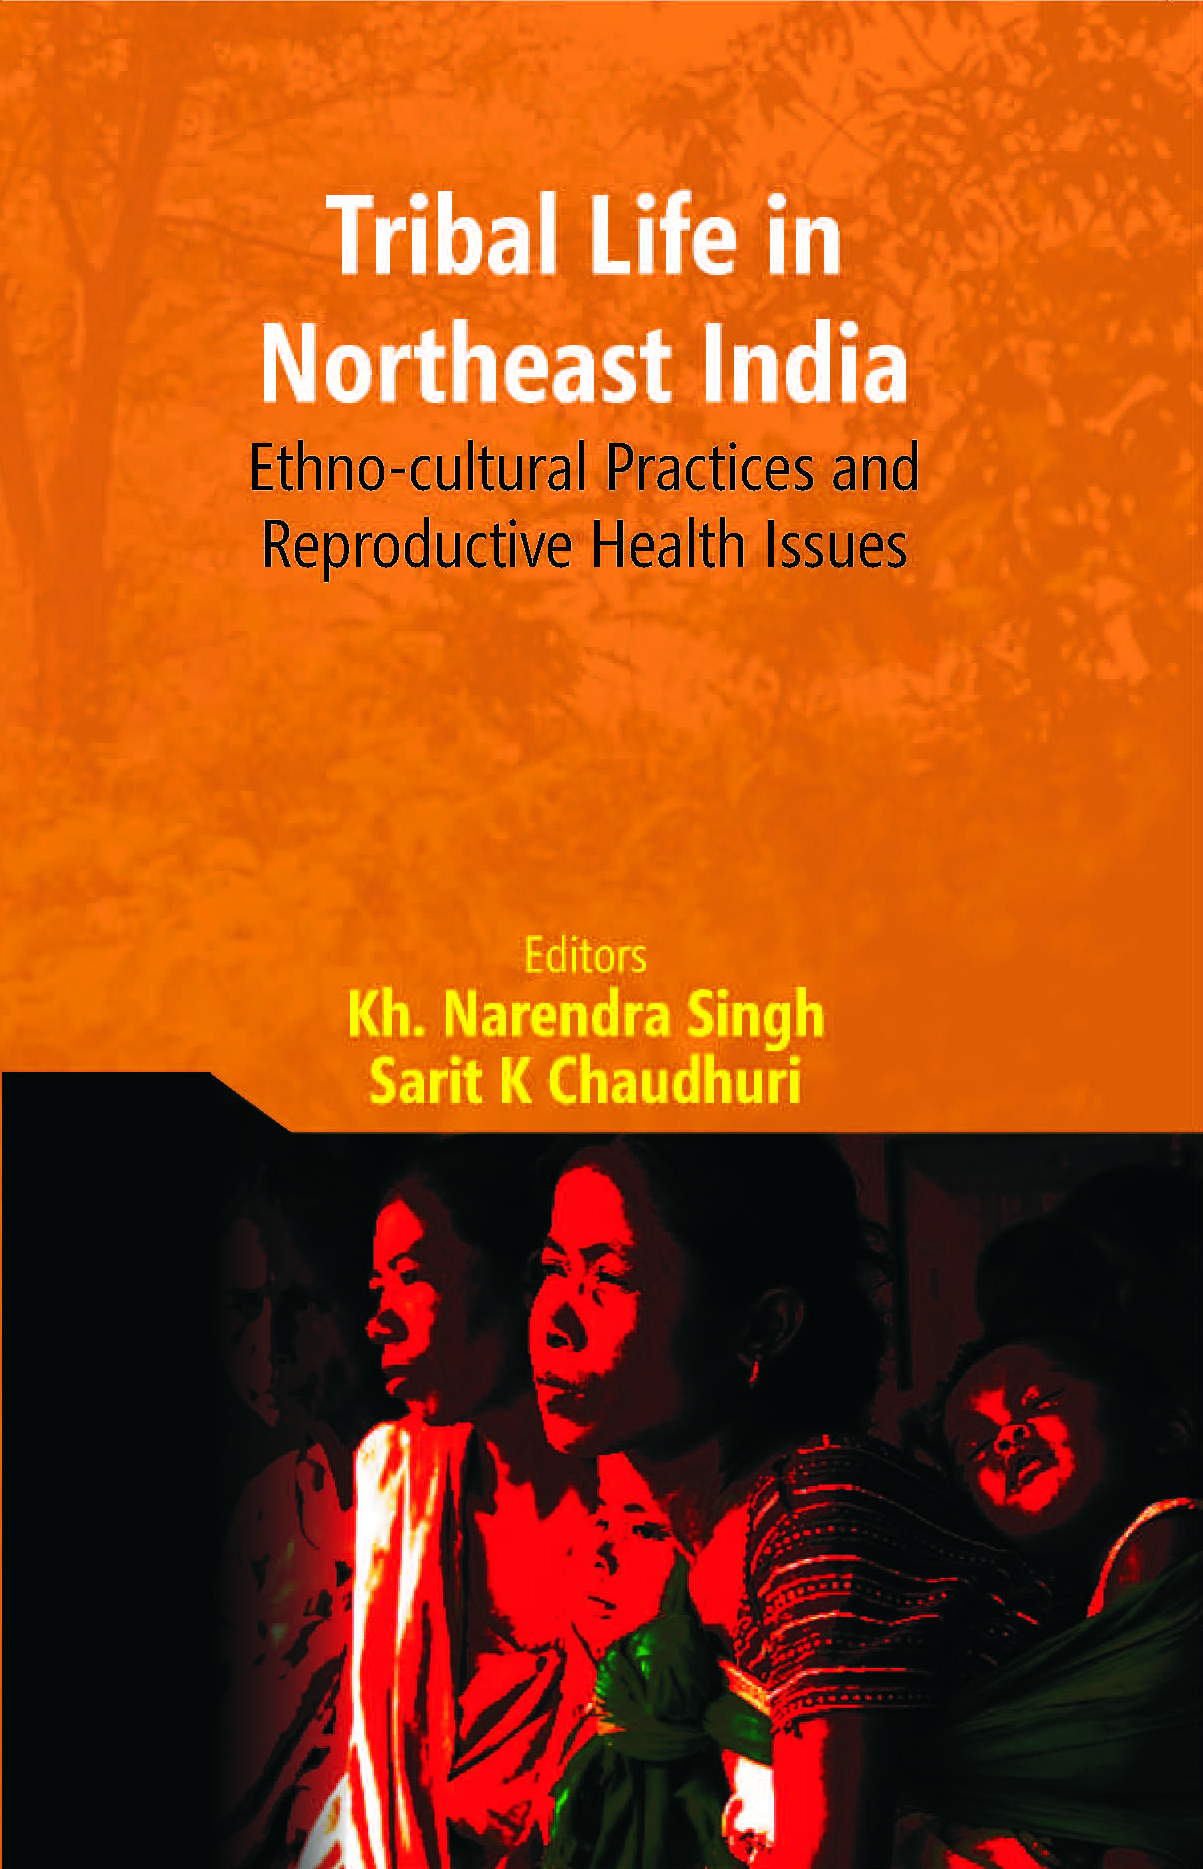 Tribal Life in Northeast India: Ethno-Cultural Practices and Reproductive Health Issues